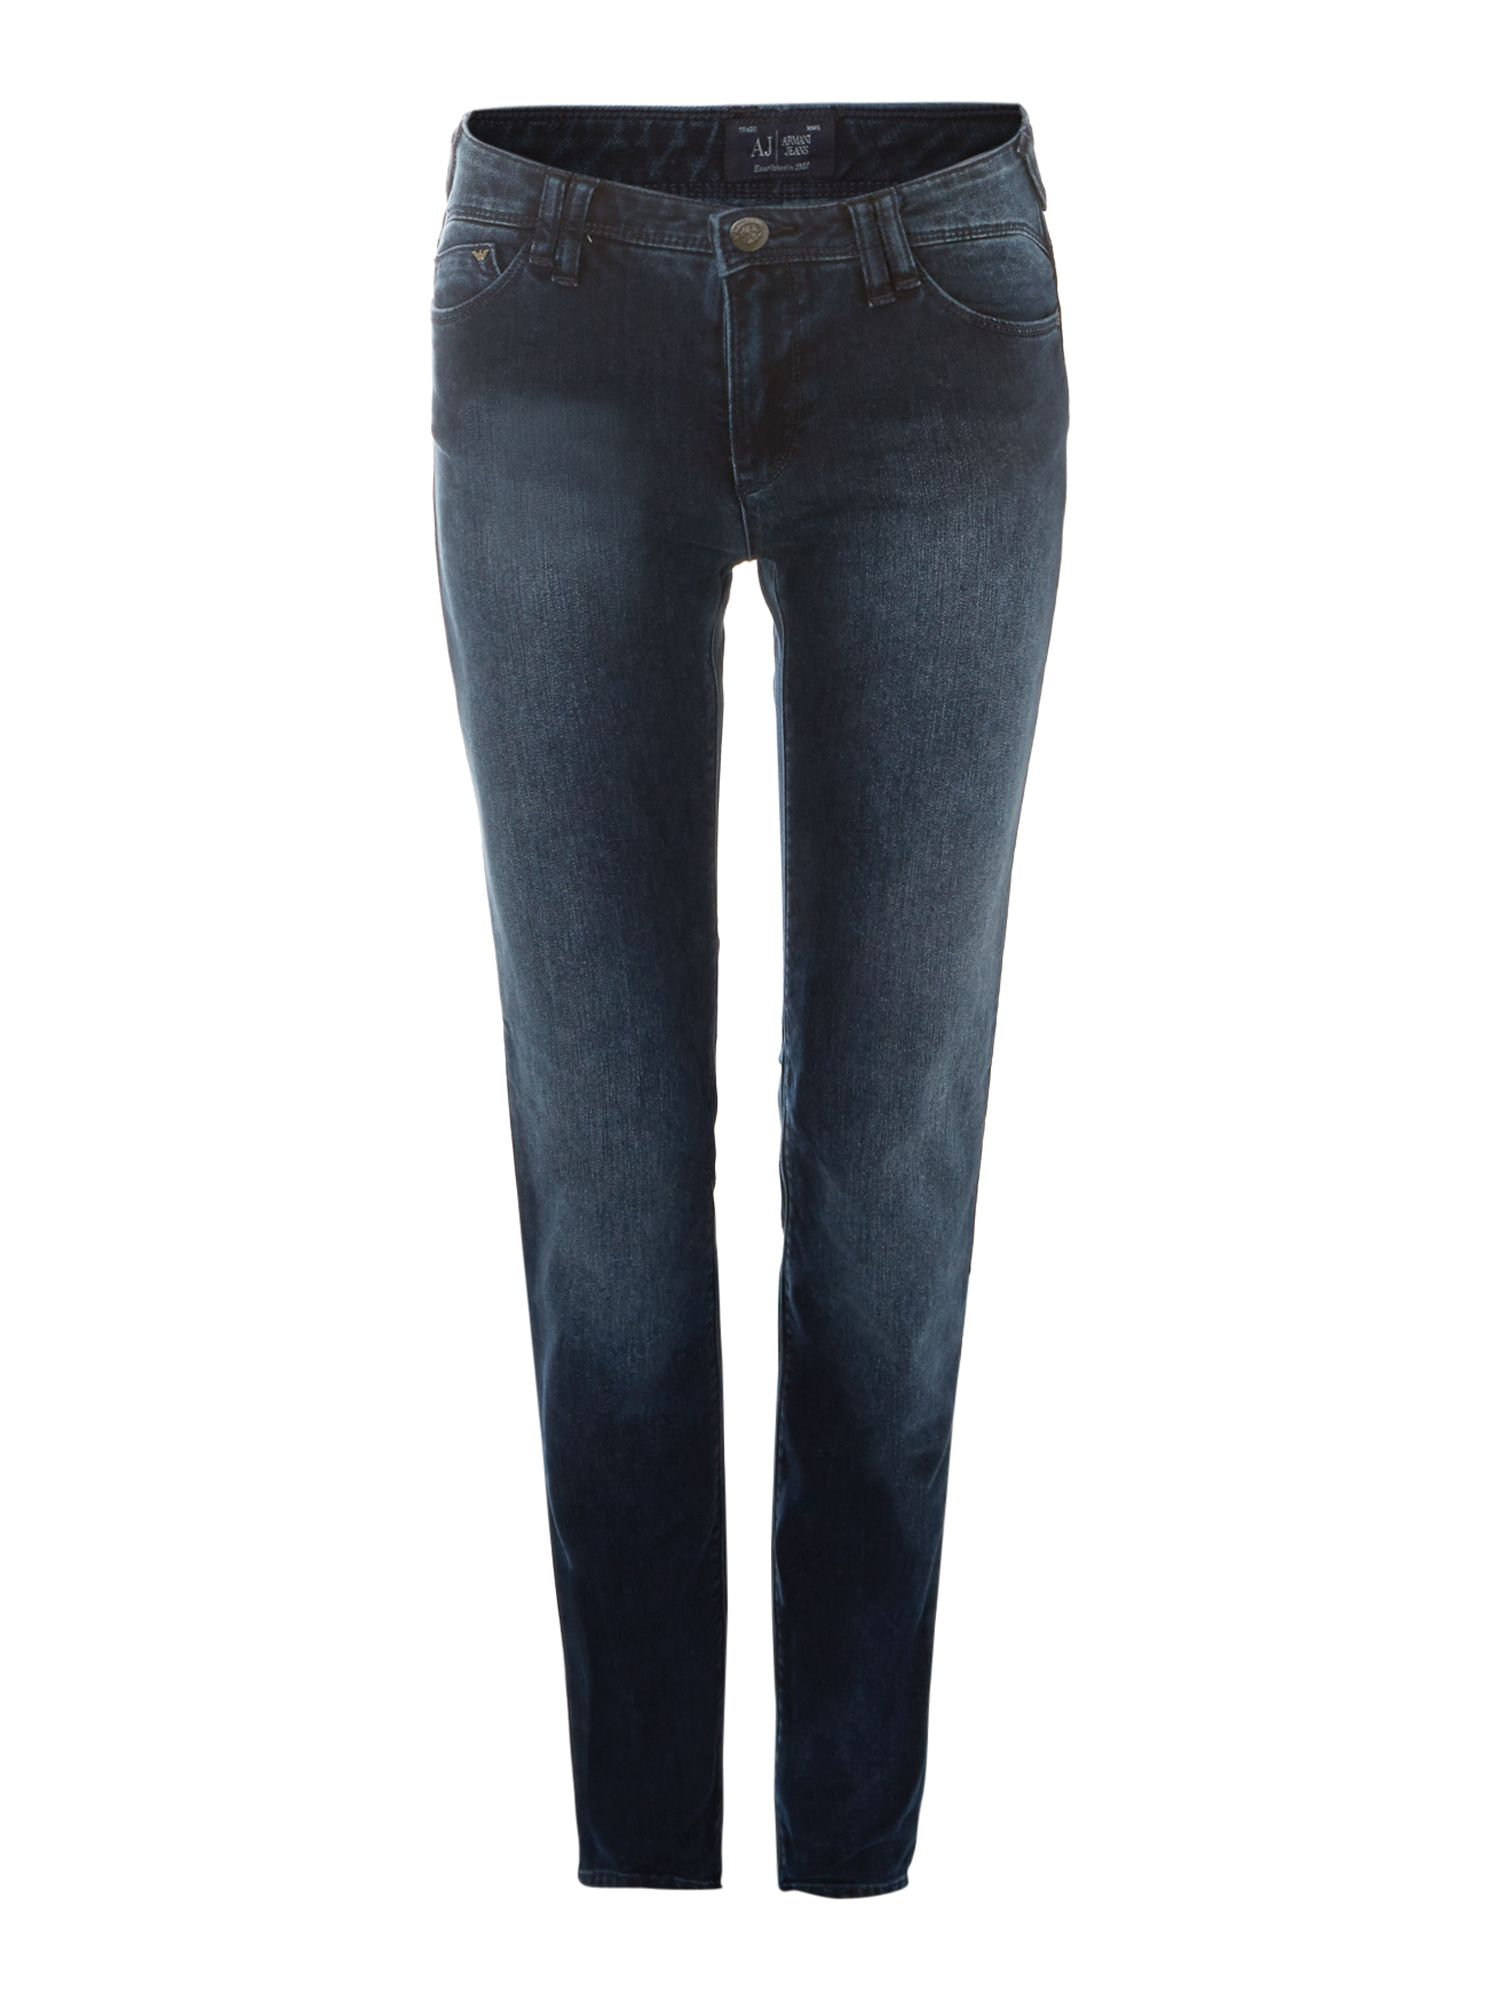 J28 skinny jeans with pocket detail